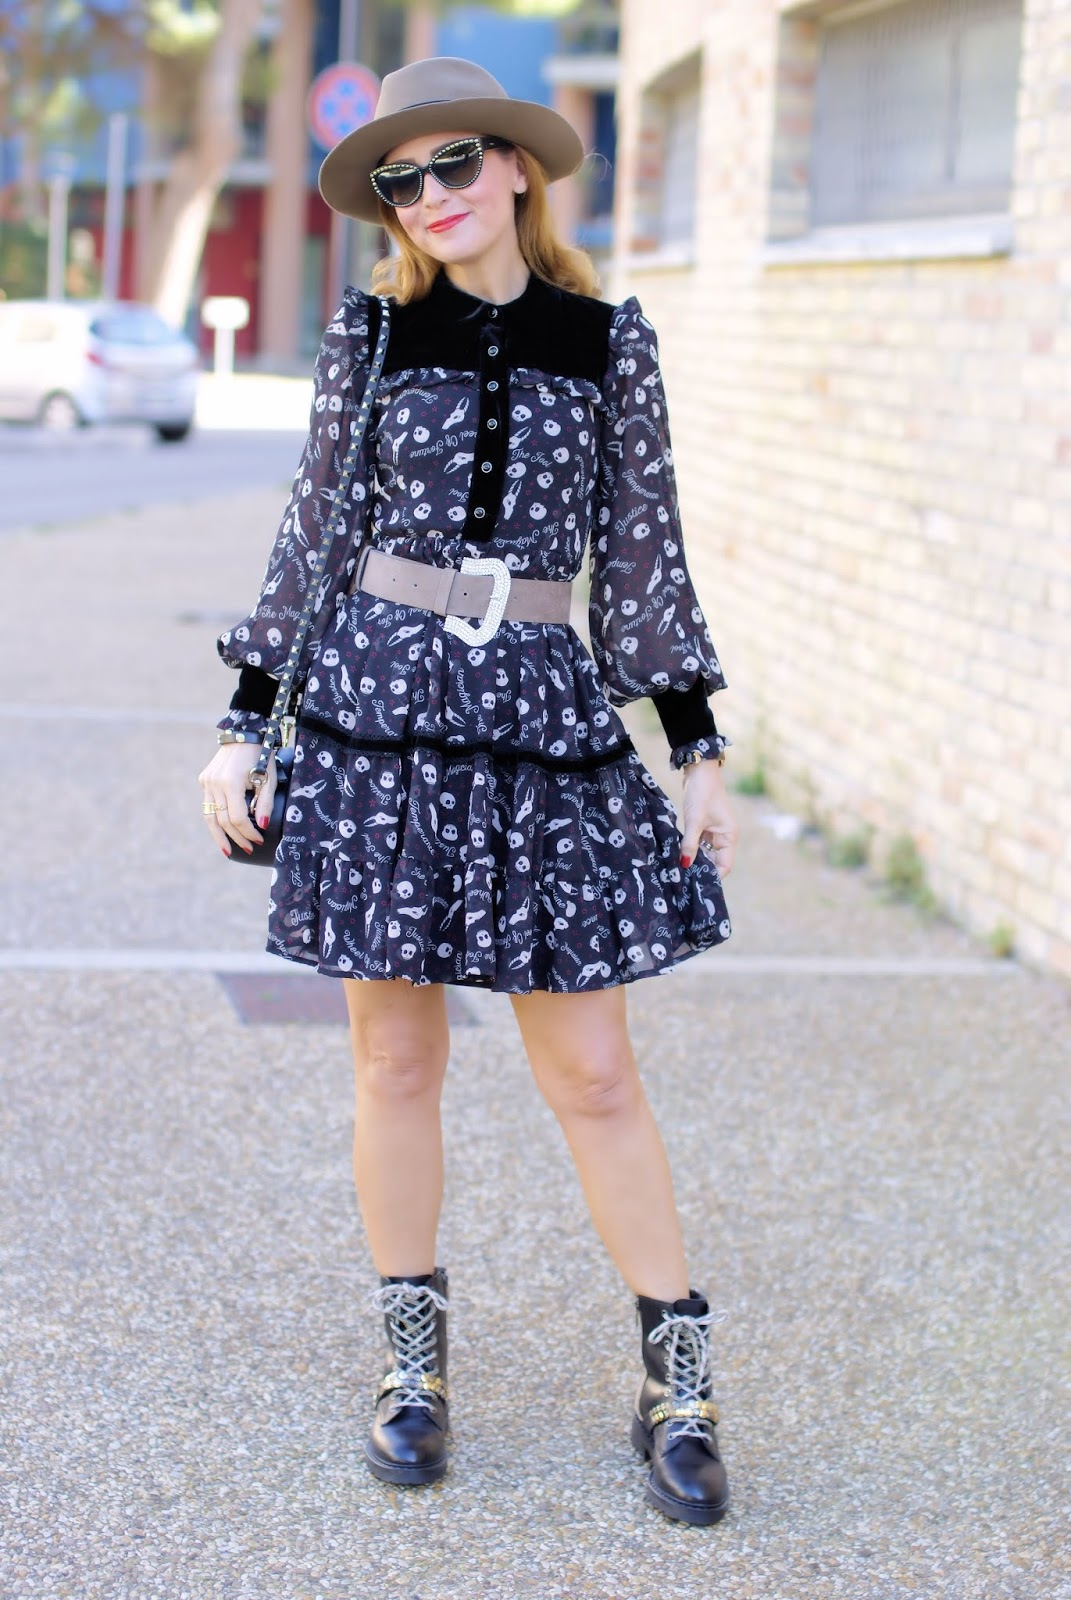 Maggie Sweet dress, Barracuda boots on Fashion and Cookies fashion blog, fashion blogger style